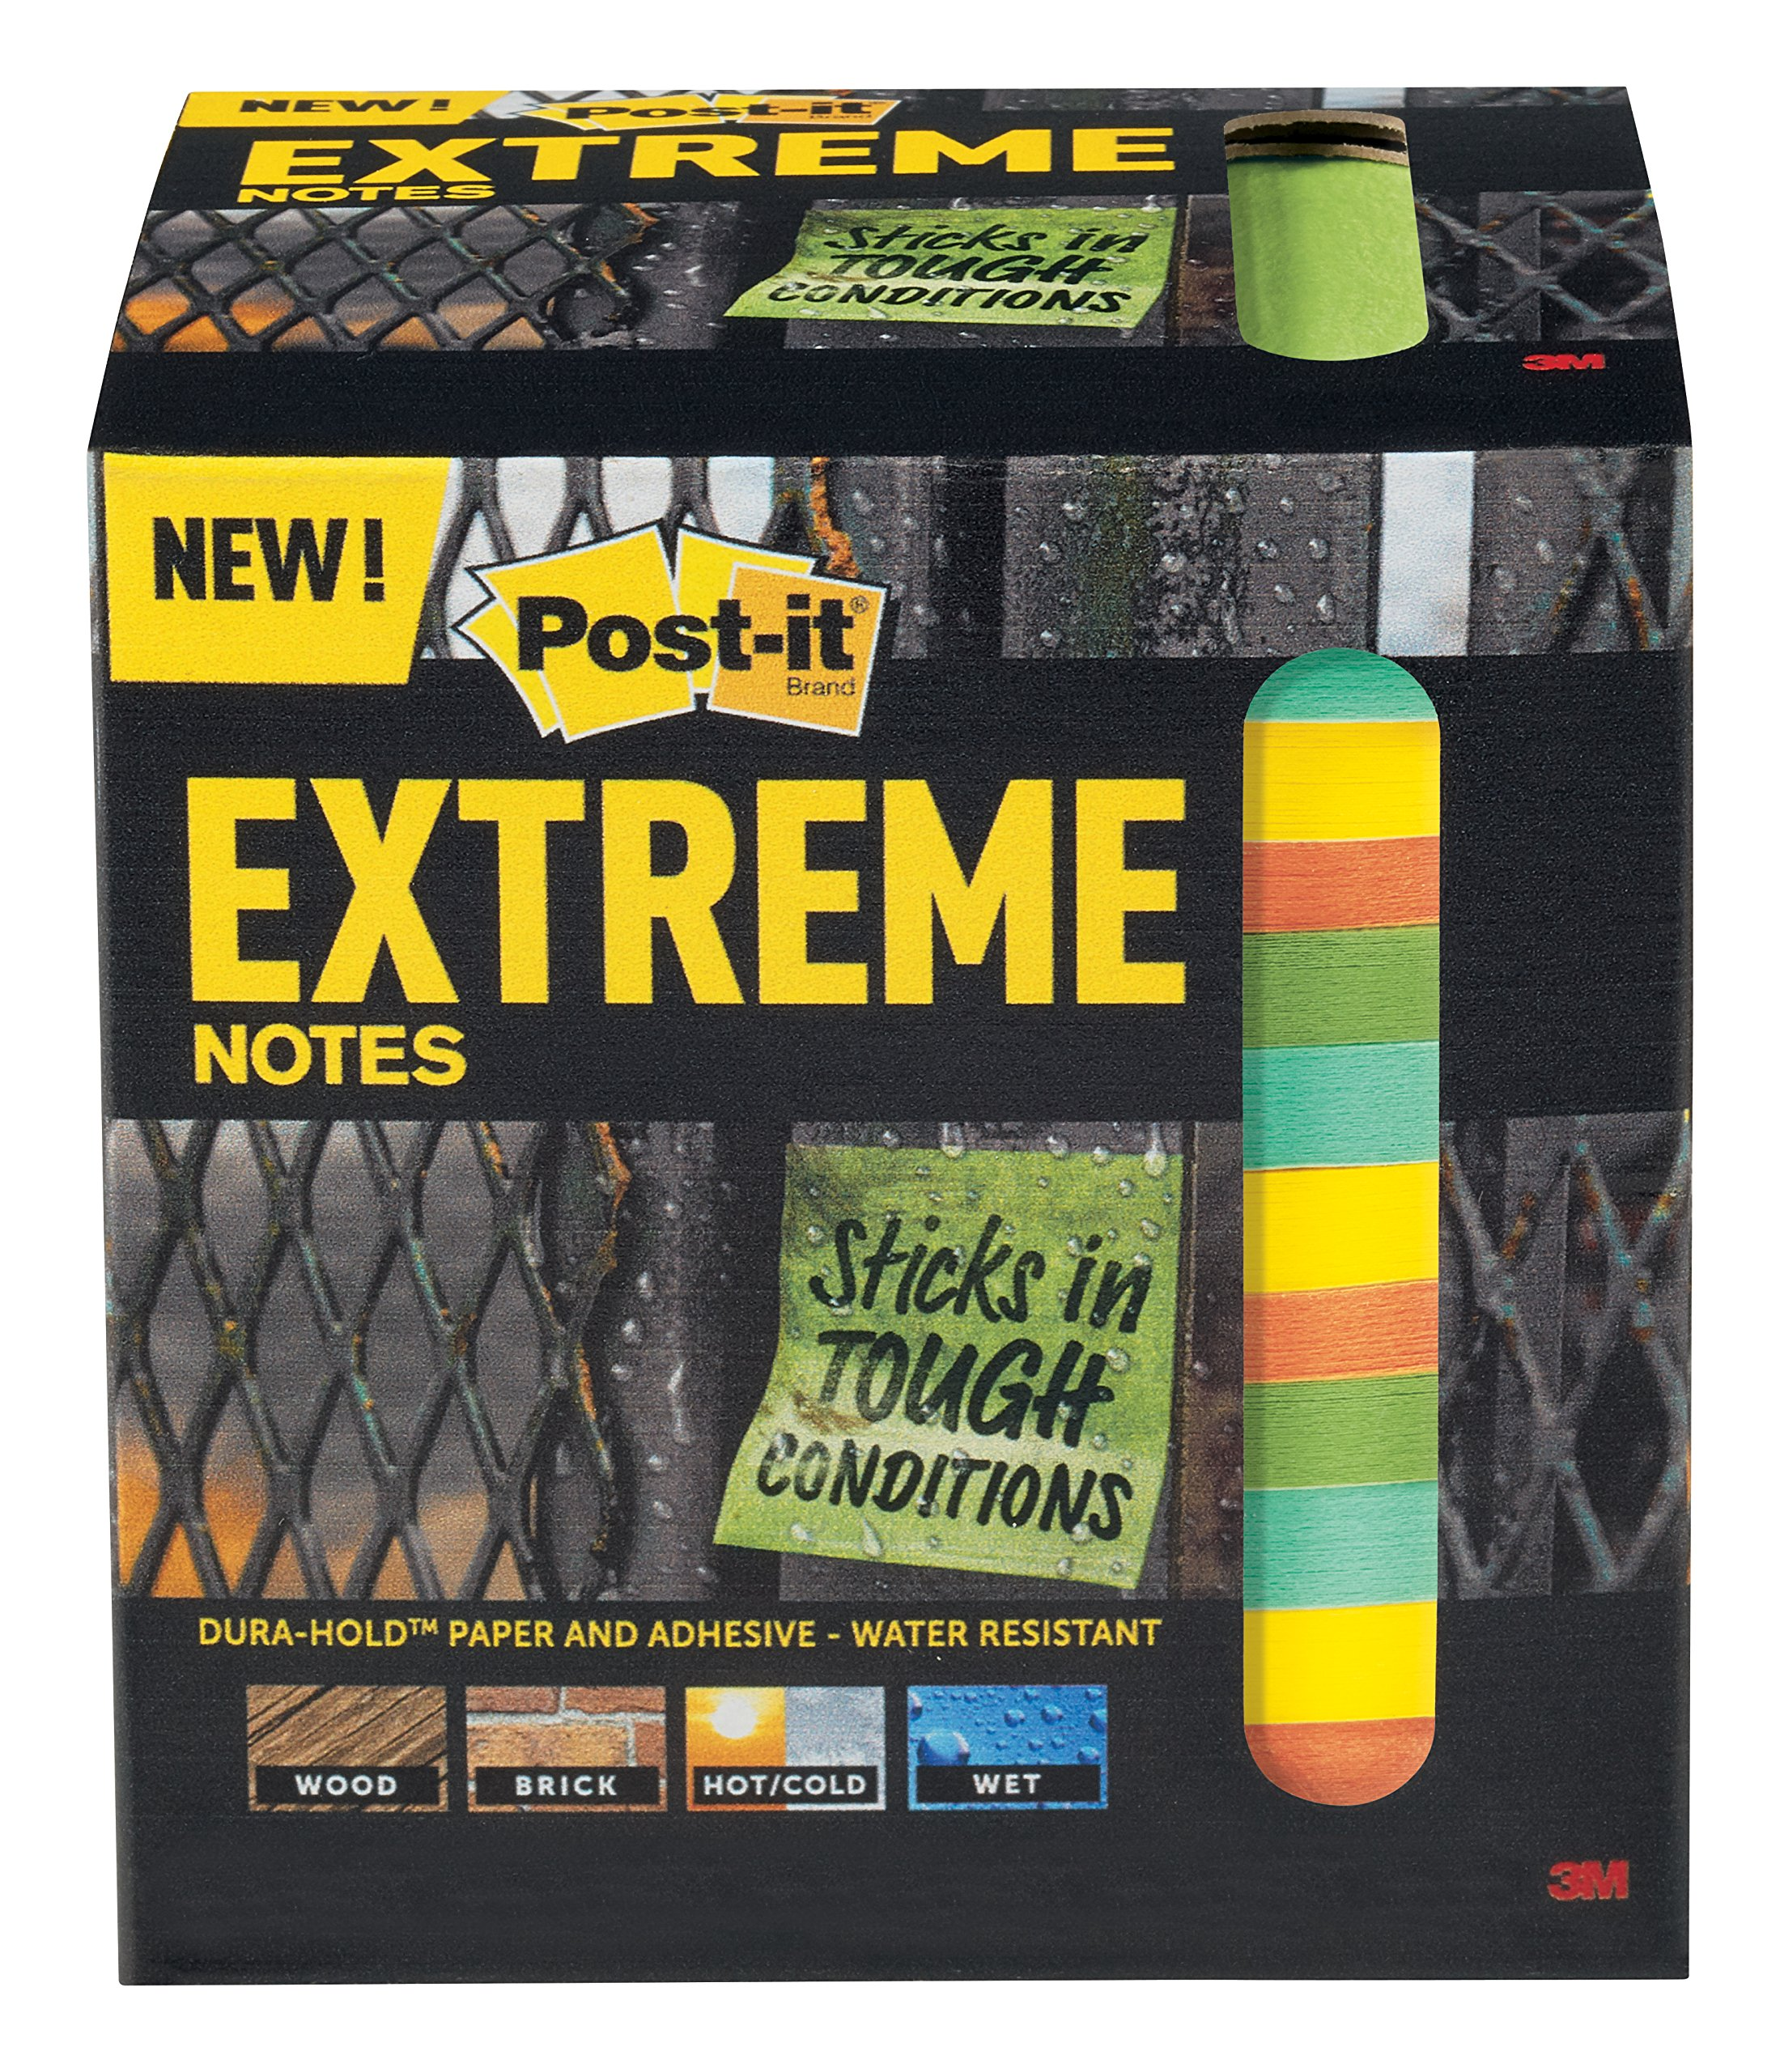 Post-it Extreme Notes, Water Resistant, Made with Dura-Hold Paper and Adhesive, Engineered for Tough Conditions, 12 Pads